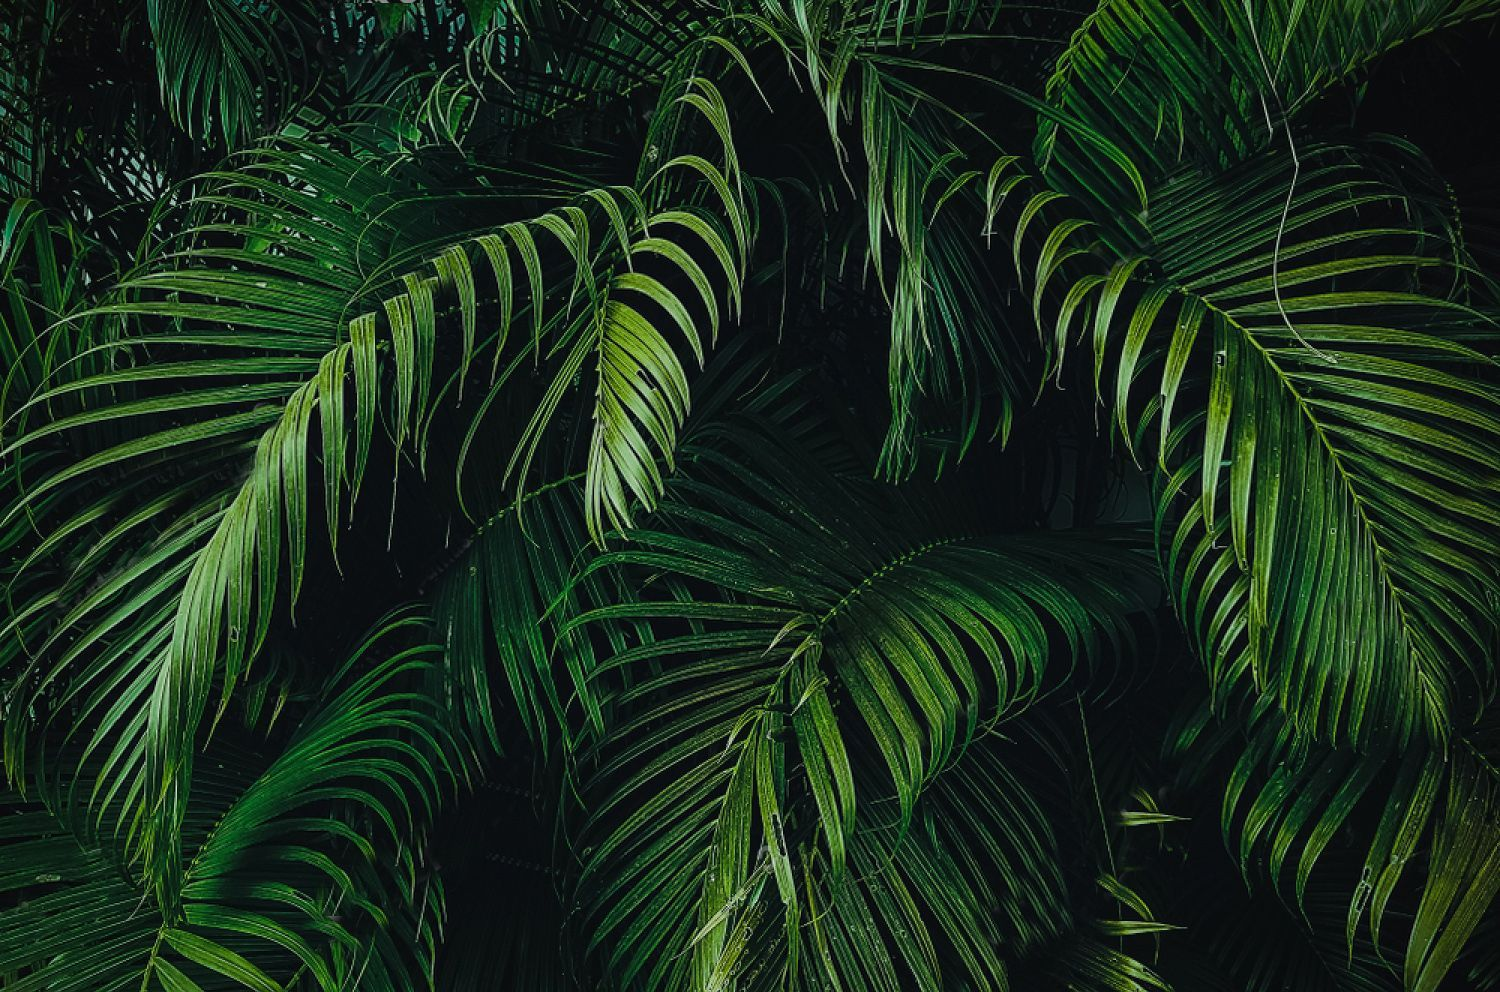 Jungle Leaves Wallpapers Top Free Jungle Leaves Backgrounds Wallpaperaccess Find the best tropical beach wallpaper desktop on wallpapertag. jungle leaves wallpapers top free